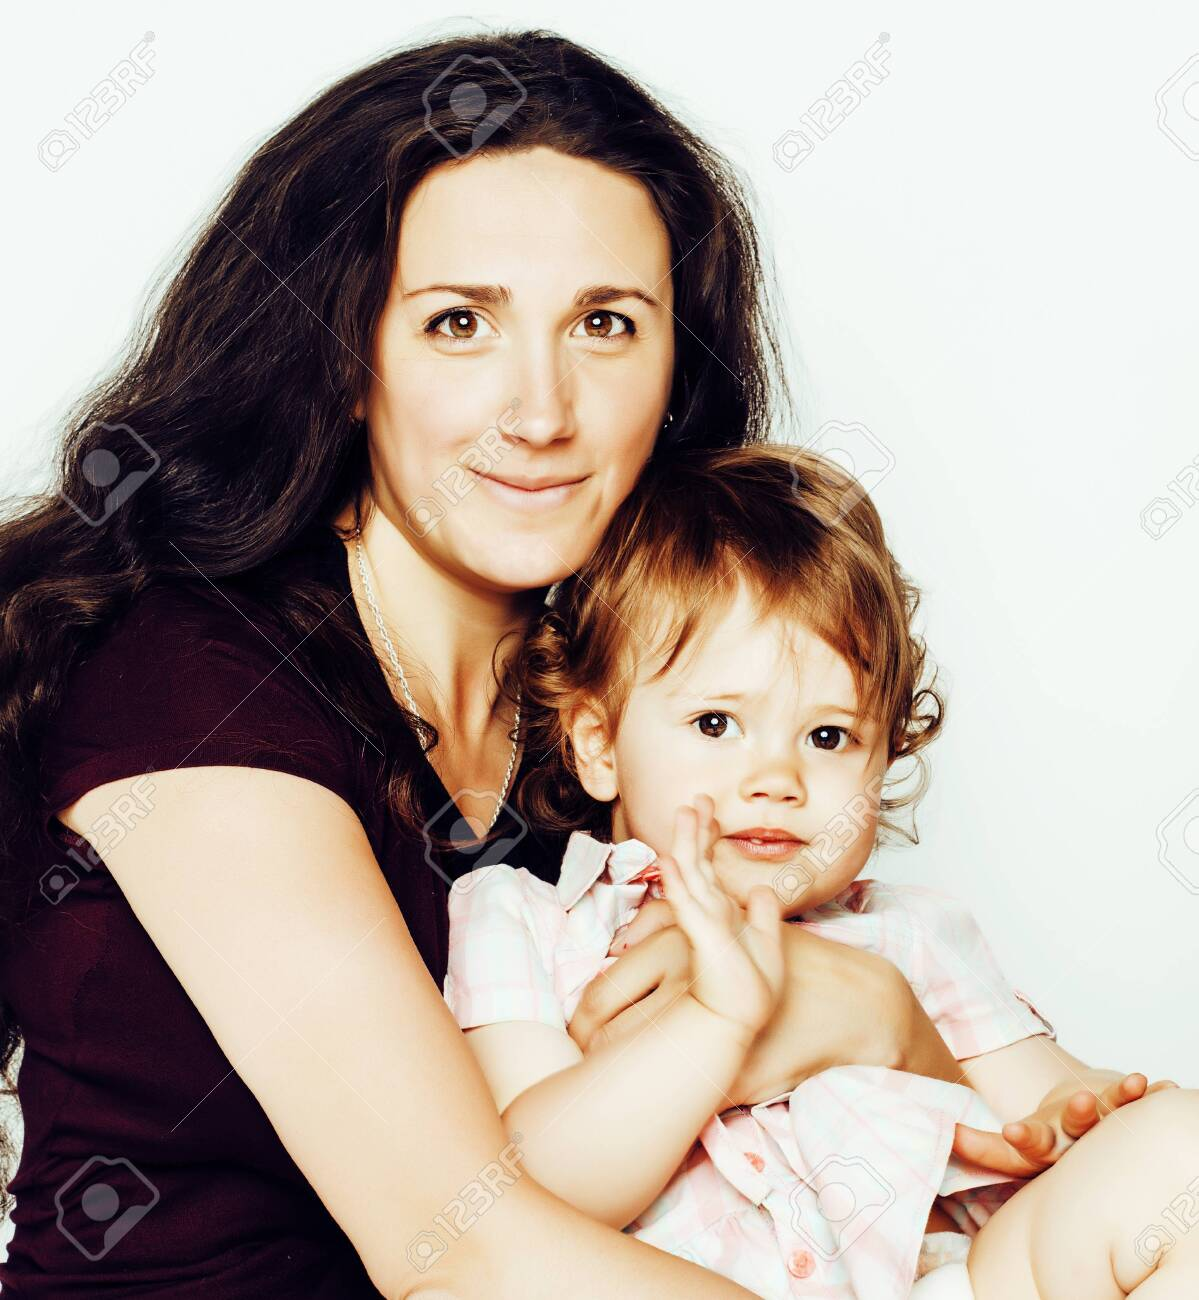 young modern smiling brunette mother with little cute daughter on white background, happy girls family inside isolated adorable - 120781615